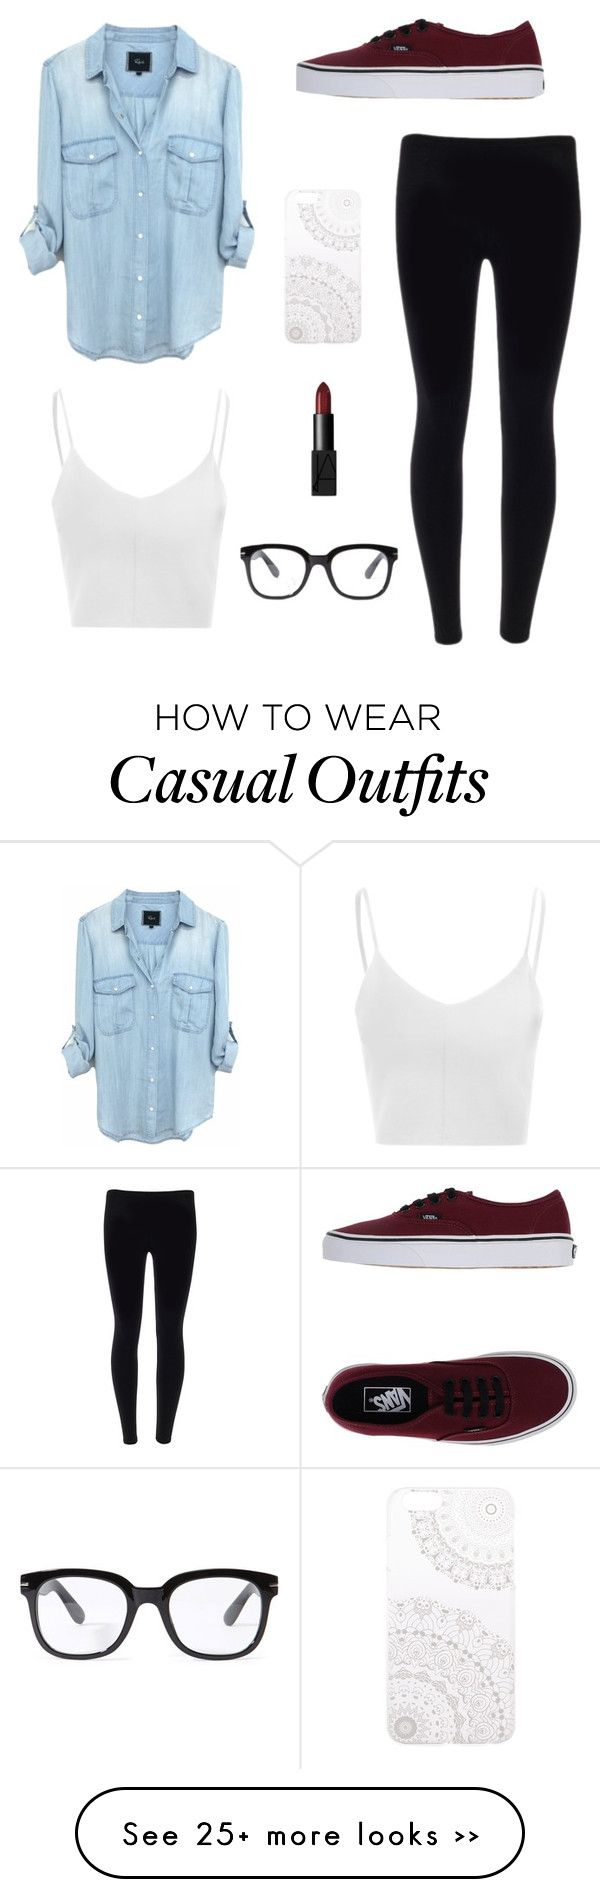 """casual"" by angiee125 on Polyvore"